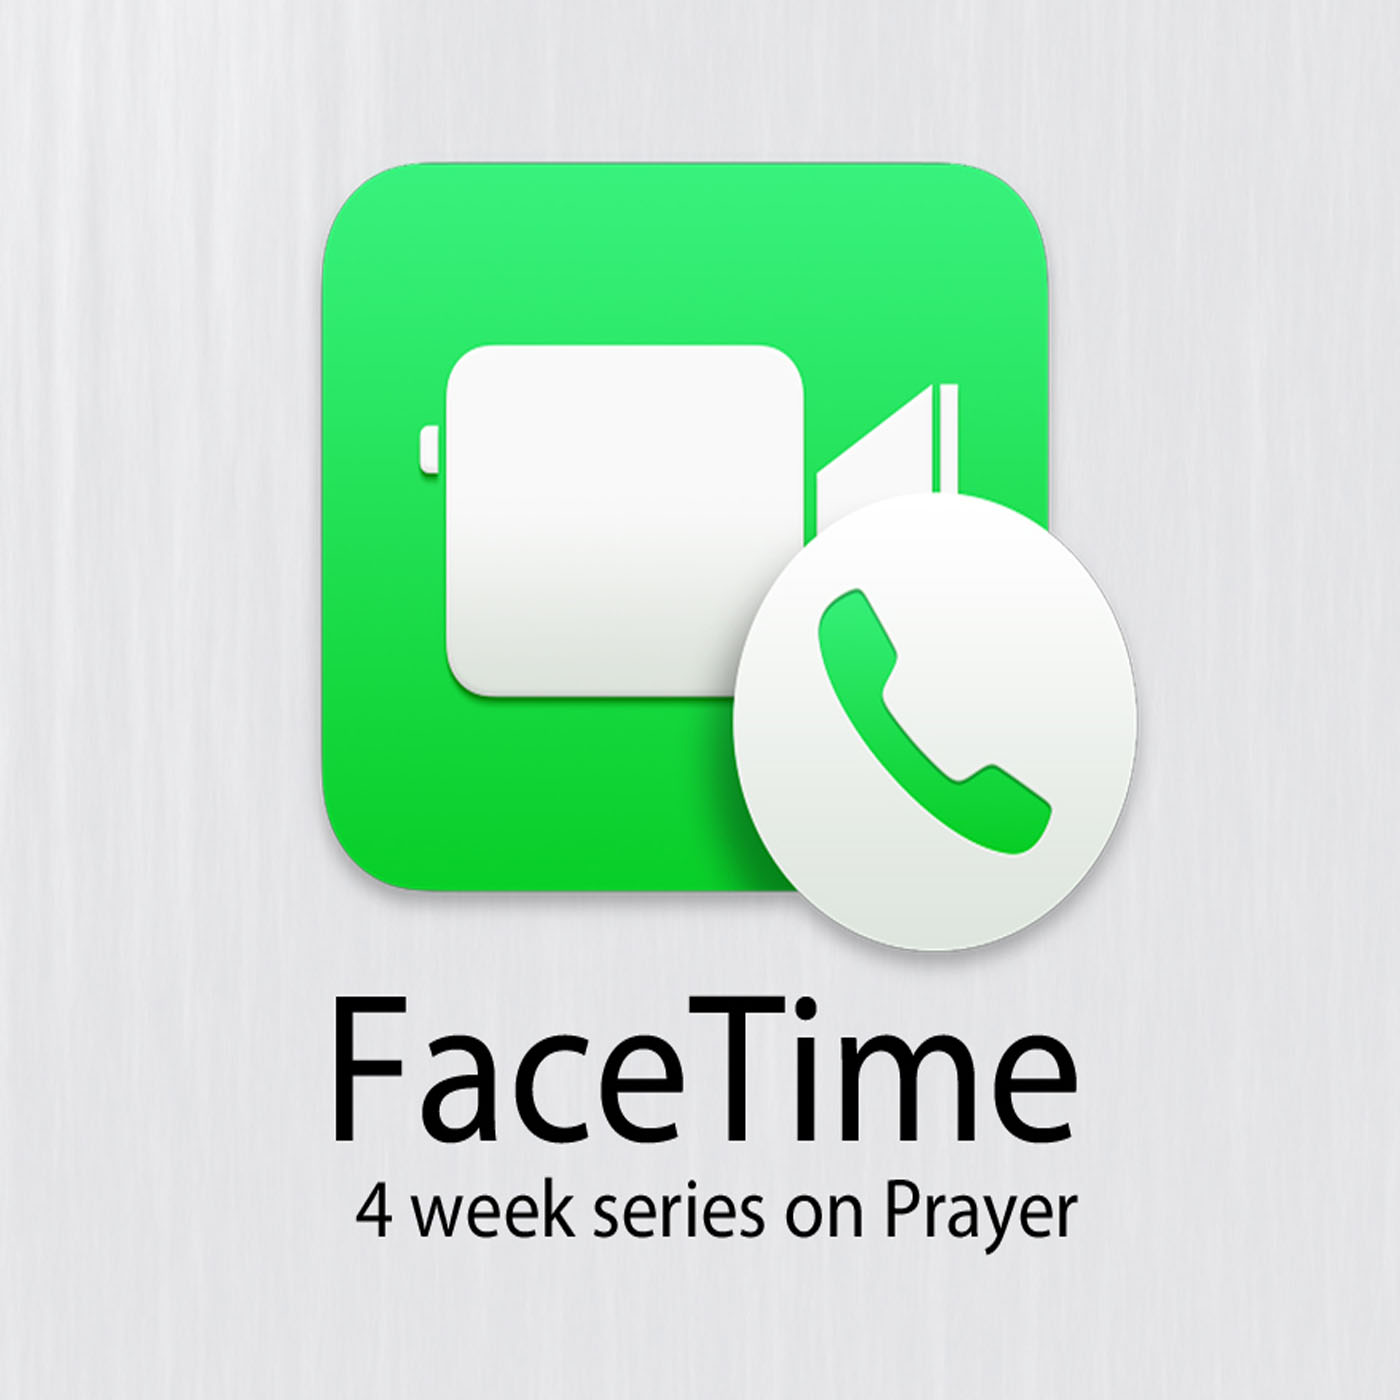 Week 3 FaceTime: Step In